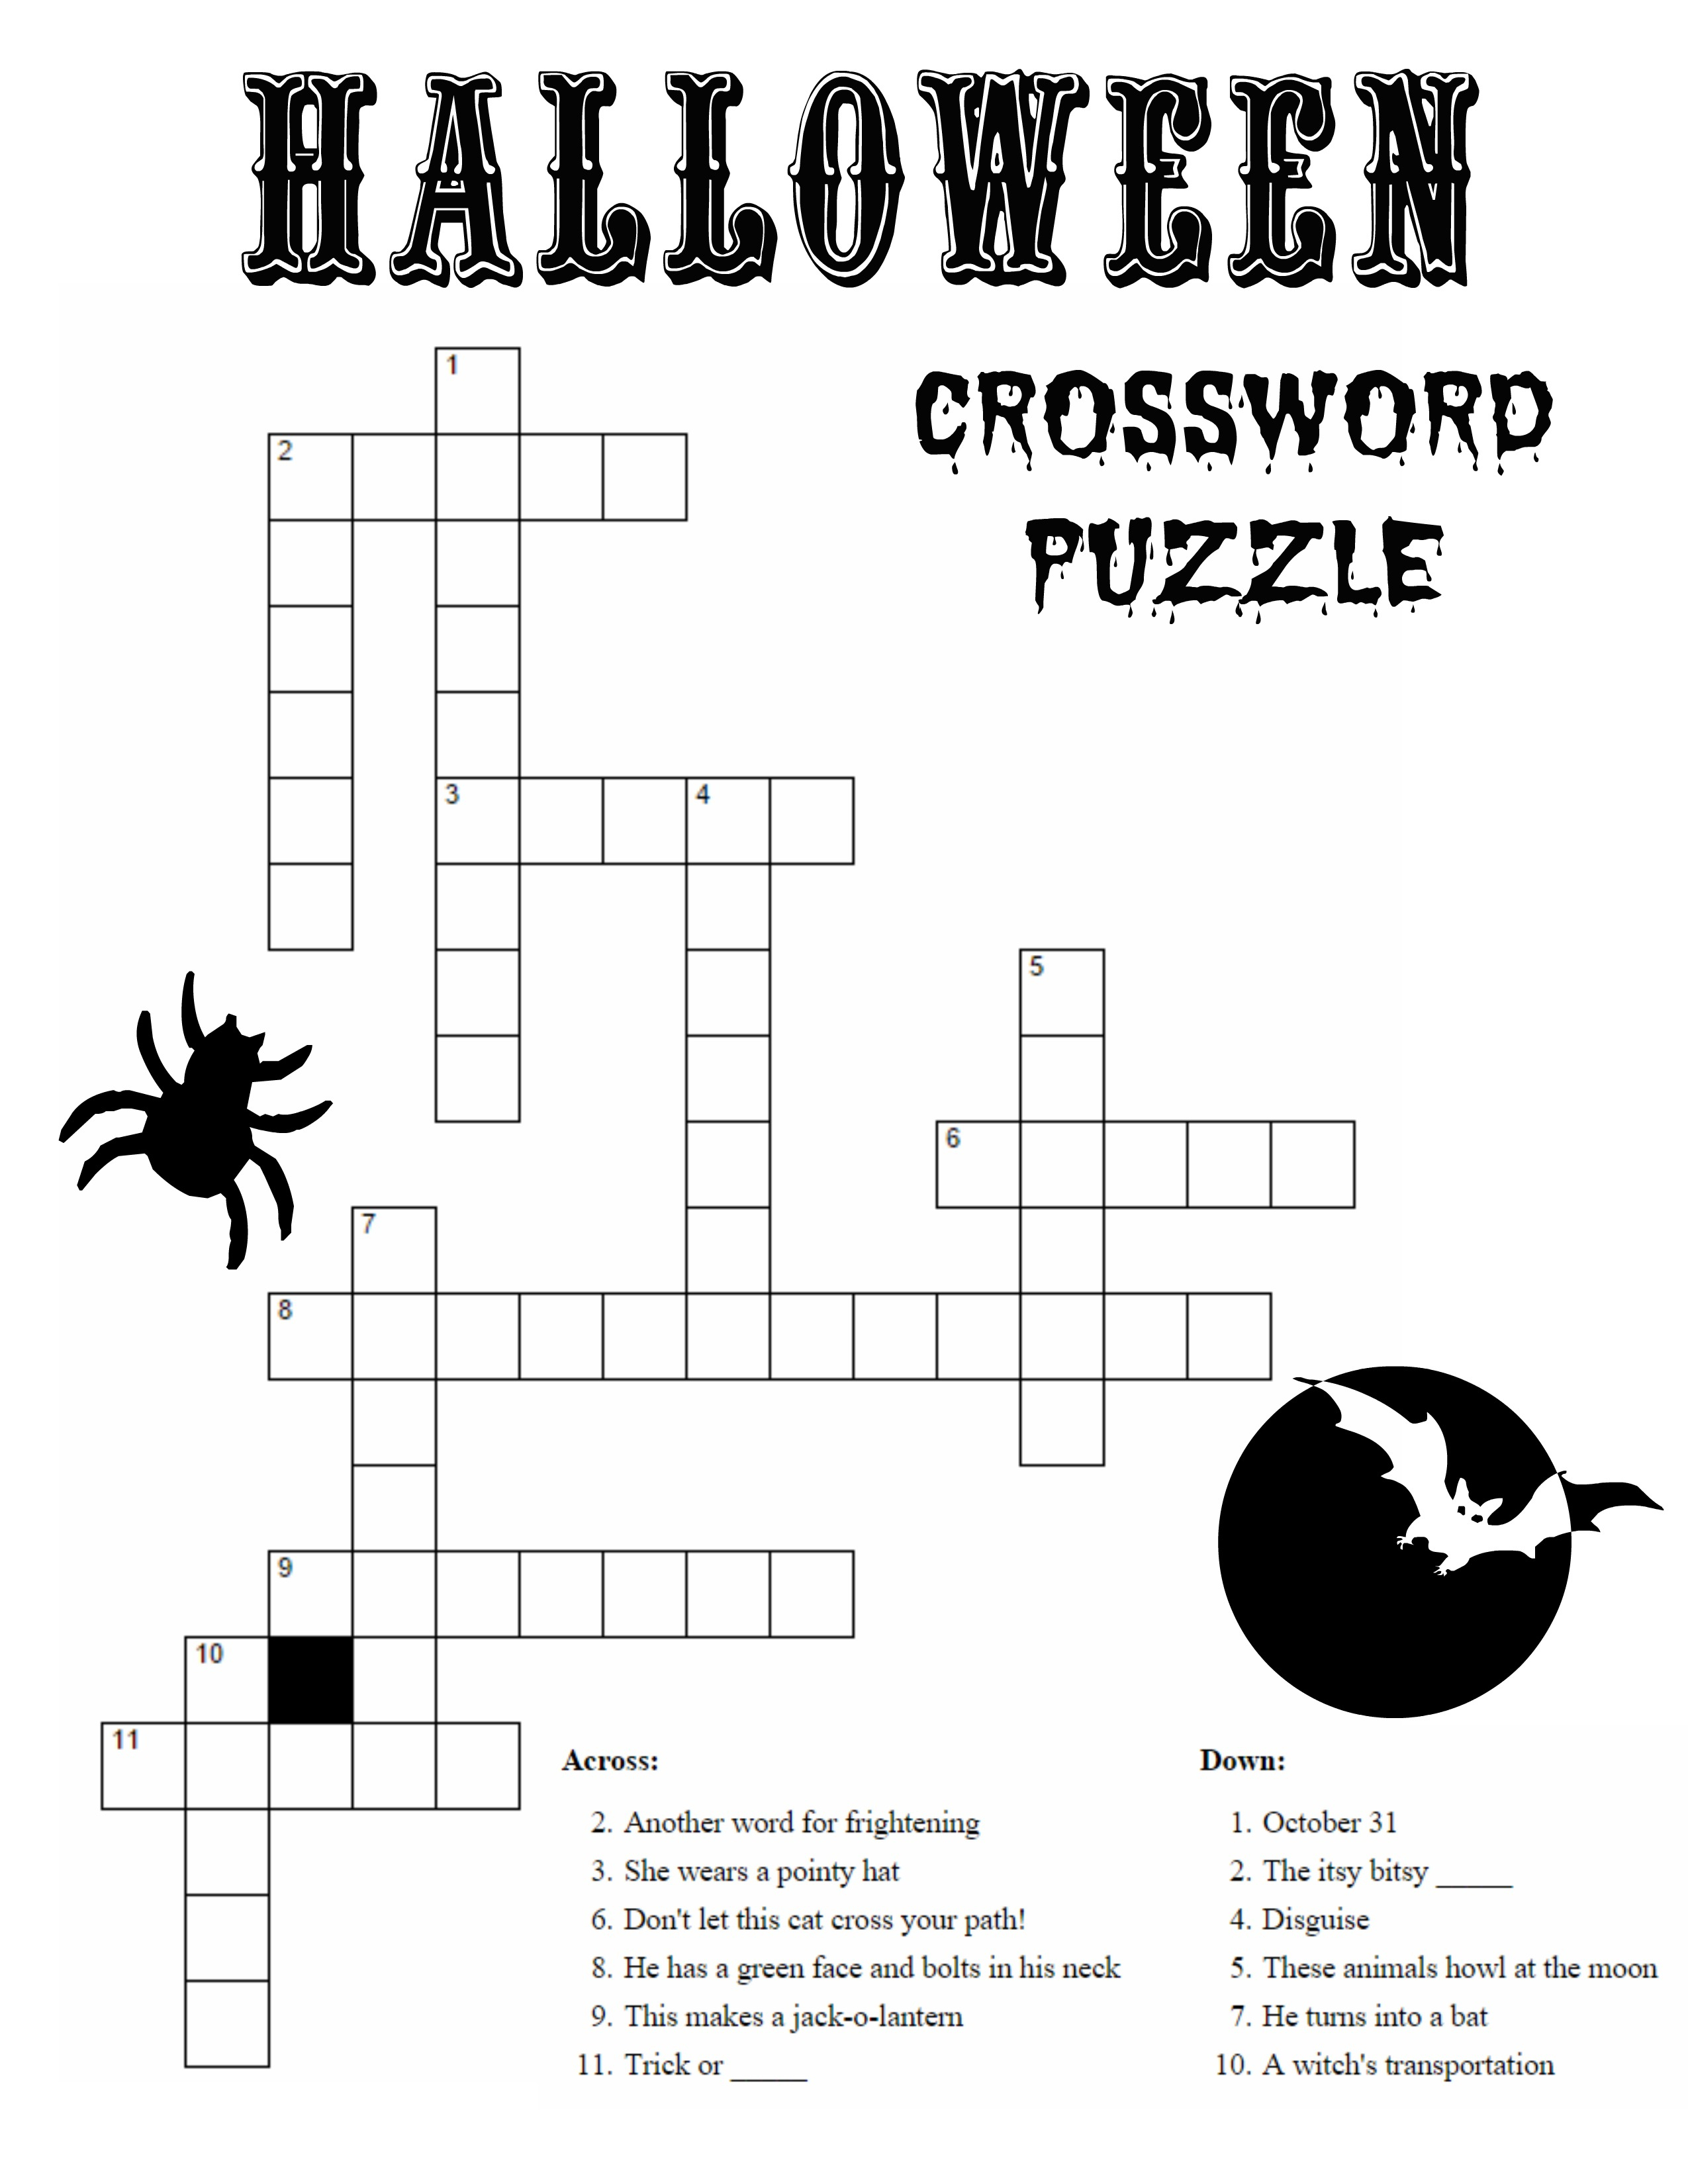 10 Best Photos Of Printable Halloween Word Puzzles - Halloween Word - Printable Halloween Crossword Puzzles Word Searches